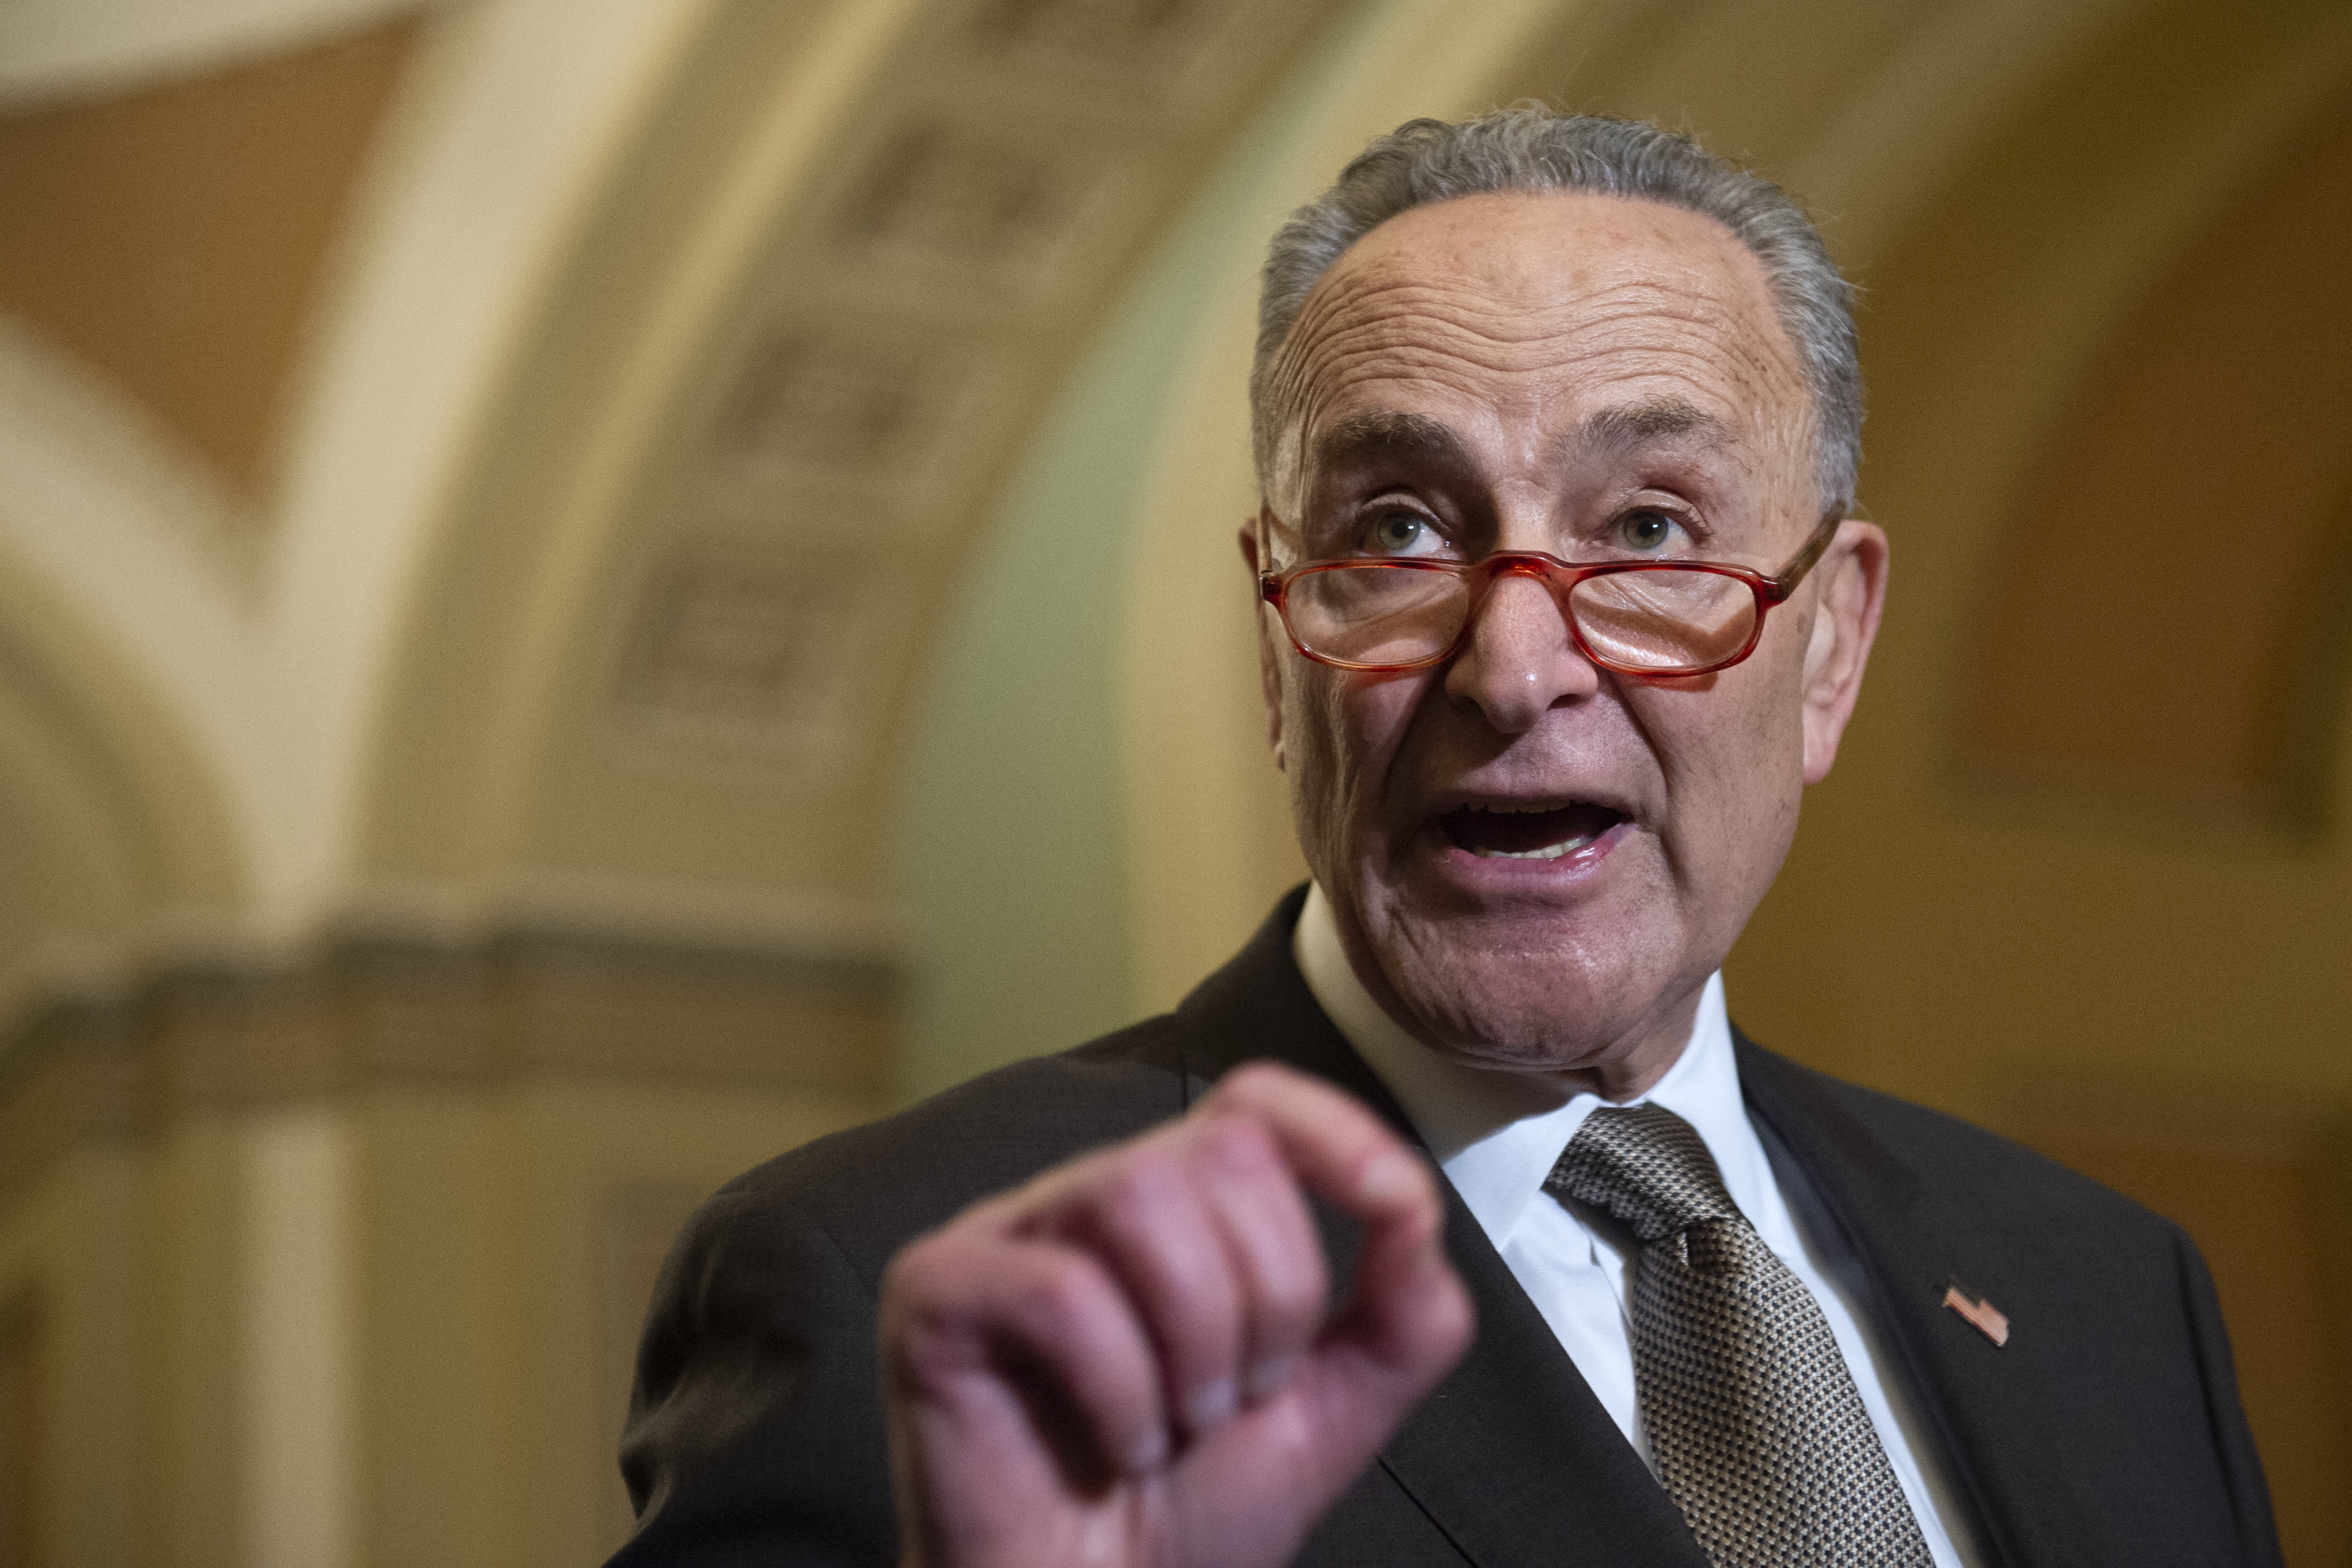 Chuck Schumer, in a letter to Trump, says a weak trade deal could hurt the US for years to come